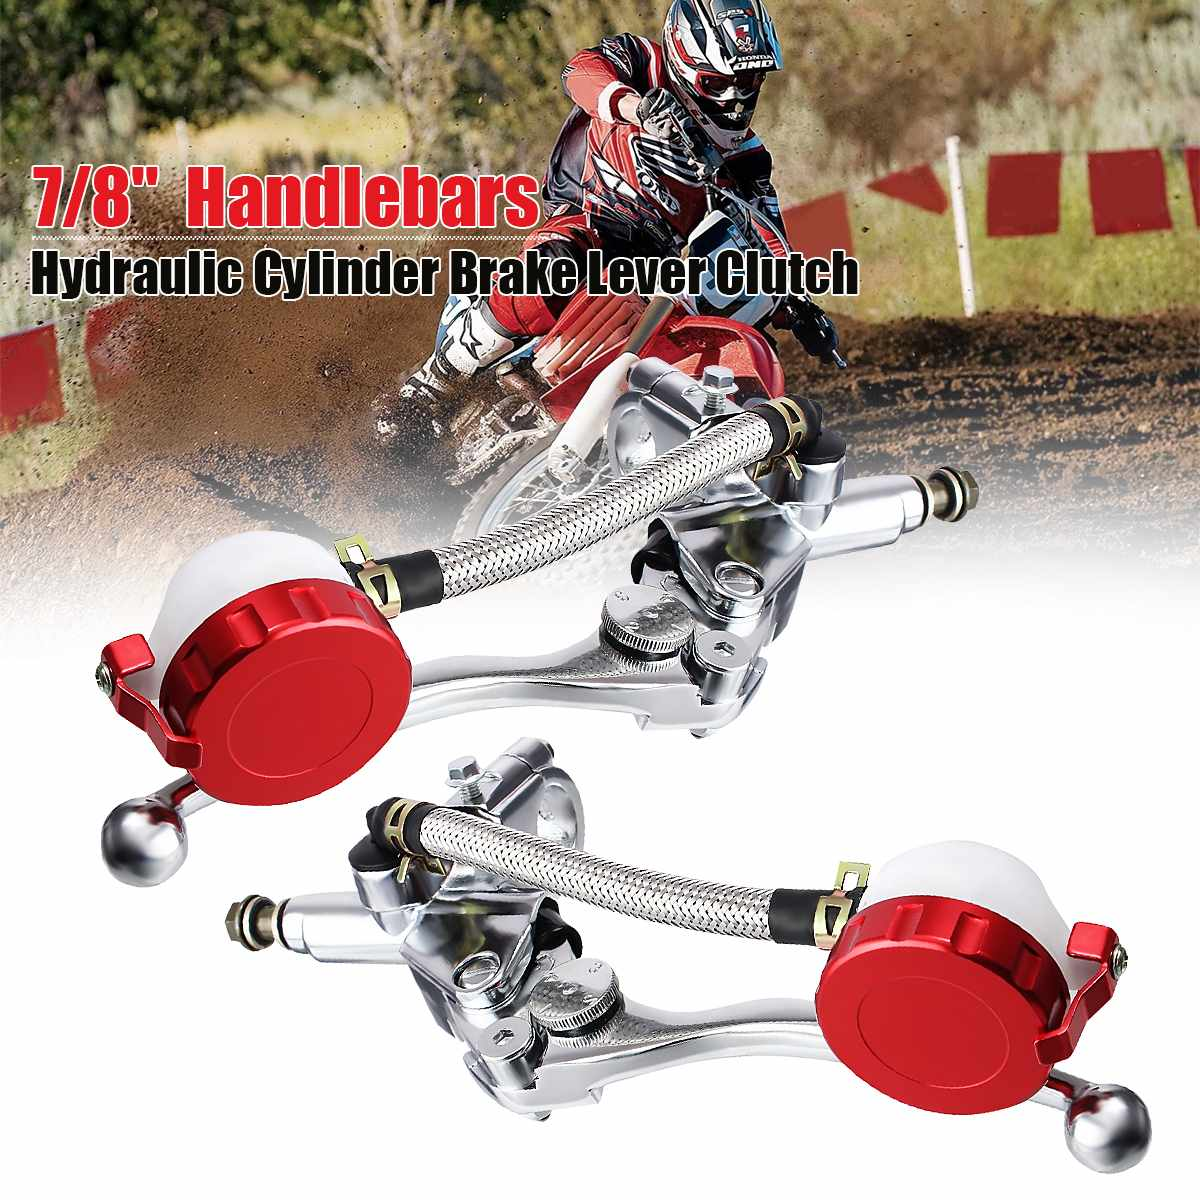 1Piece Universal 7/8'' 17mm Motorcycle Scooter Dirt Bike Hydraulic Brake Clutch Lever Master Cylinder For Honda/Suzuki/Yamaha(China)